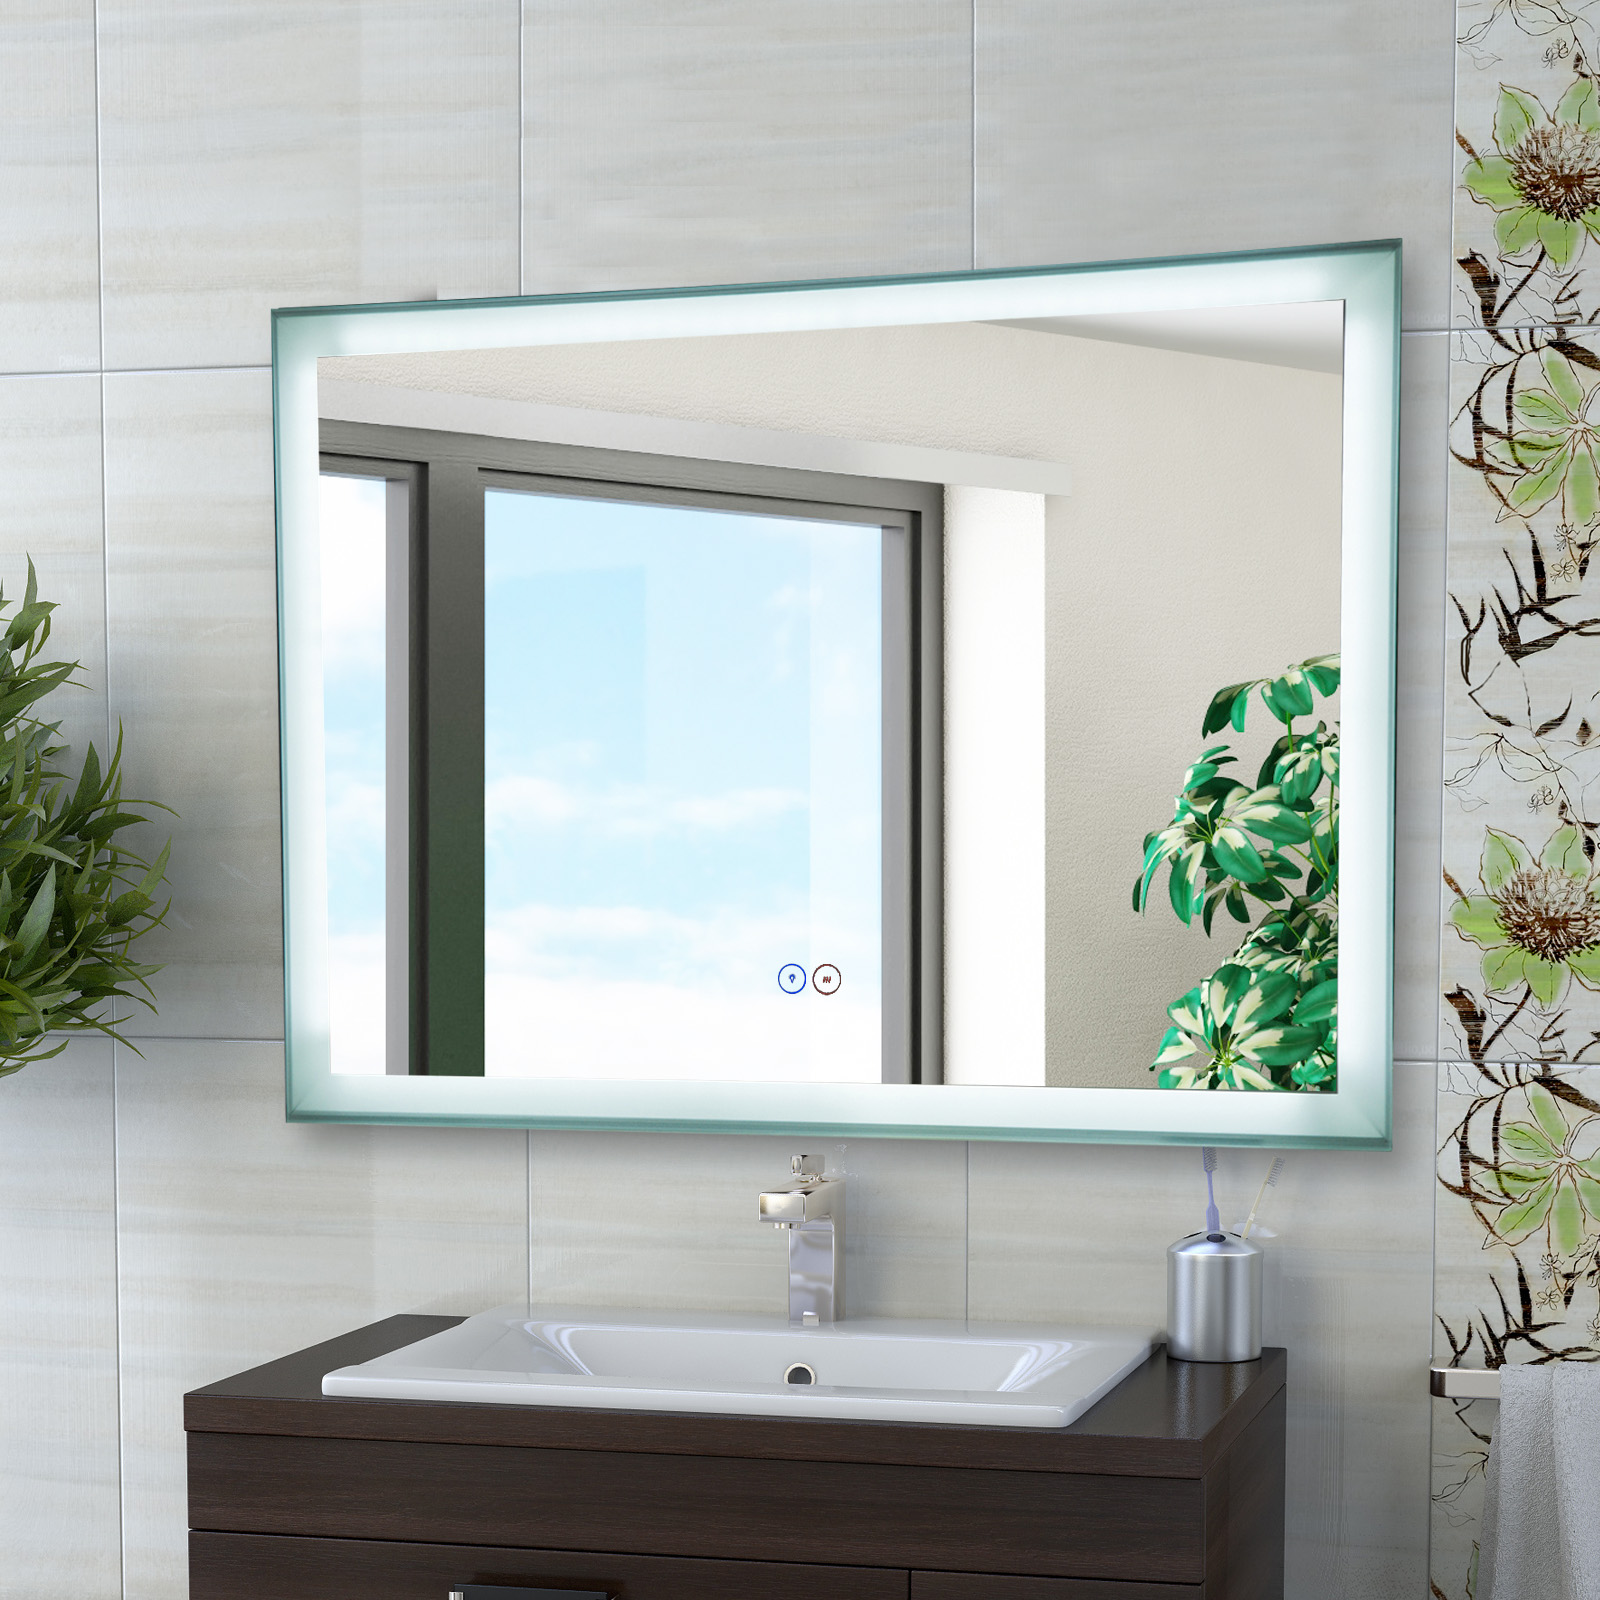 Rectangular LED Illuminated Anti-Fog Bathroom Wall Mirror Lighted ...